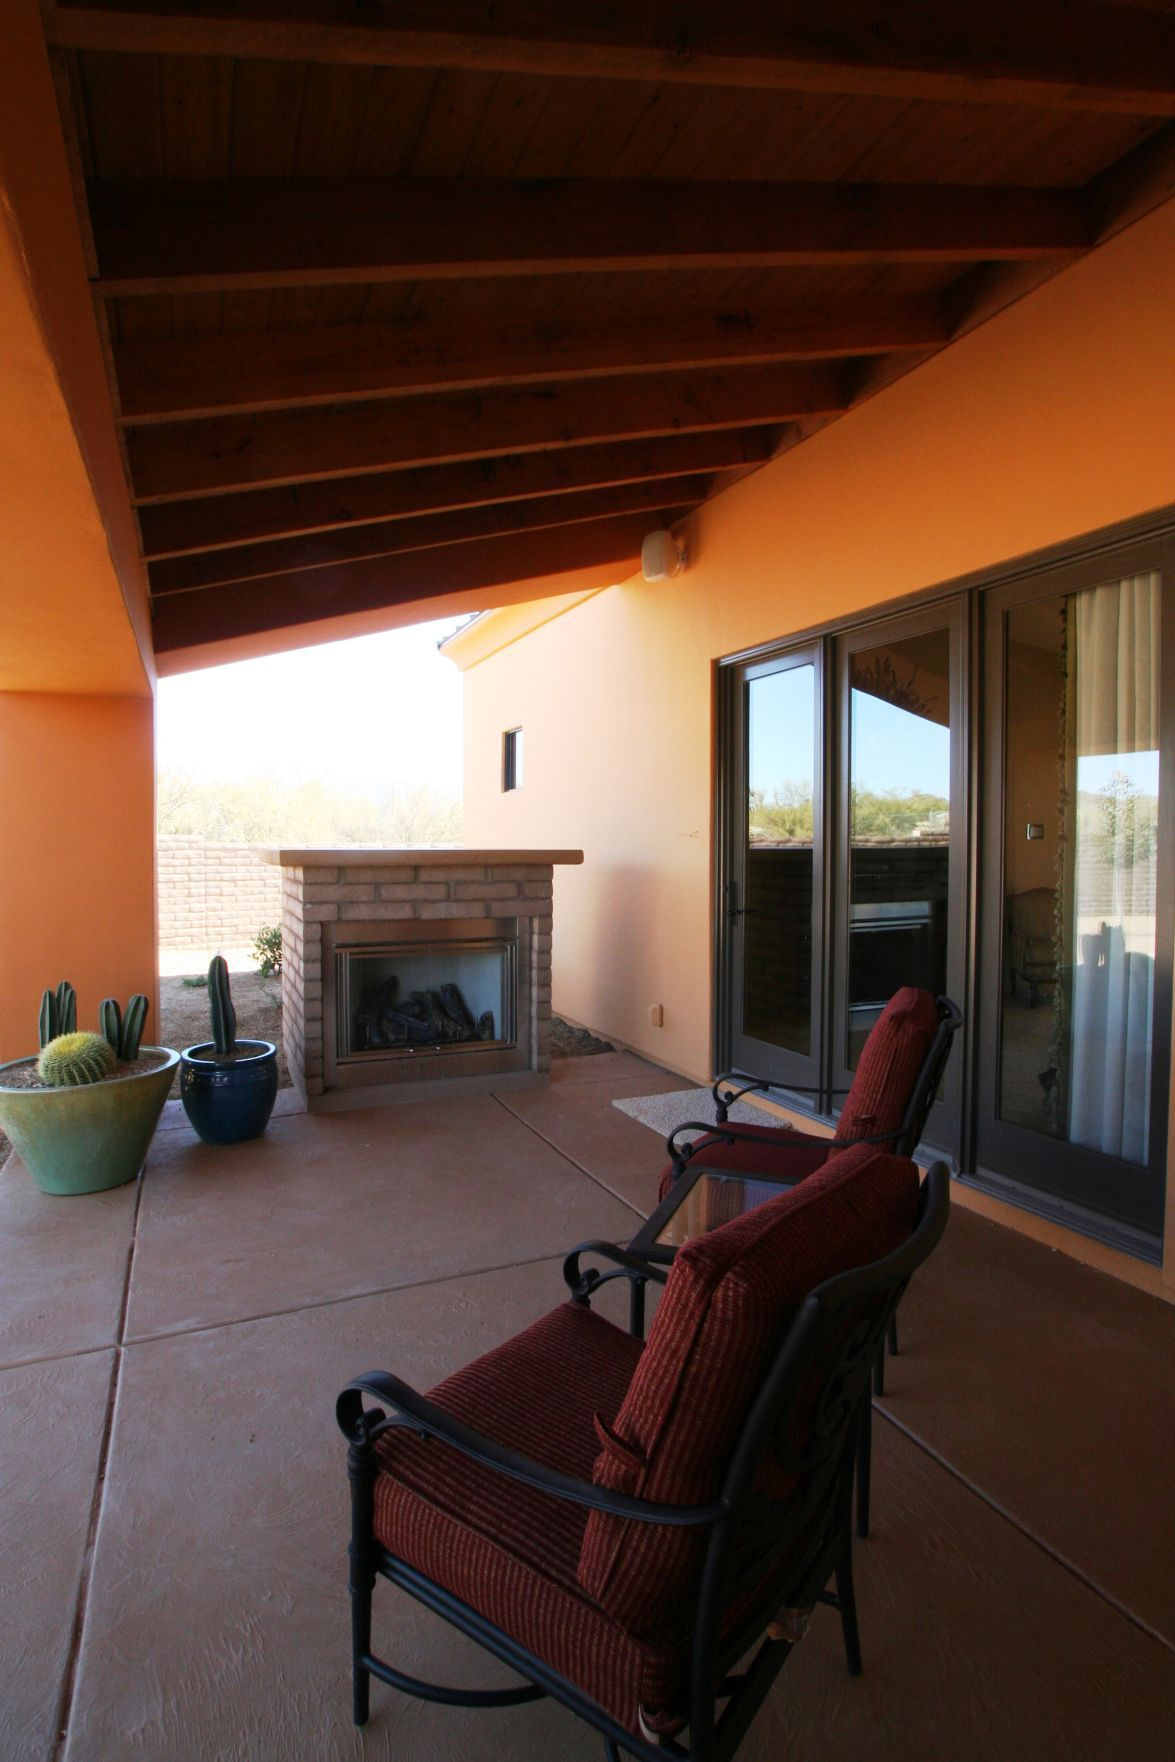 Can I Turn My Back Patio Into Another Room for My House?